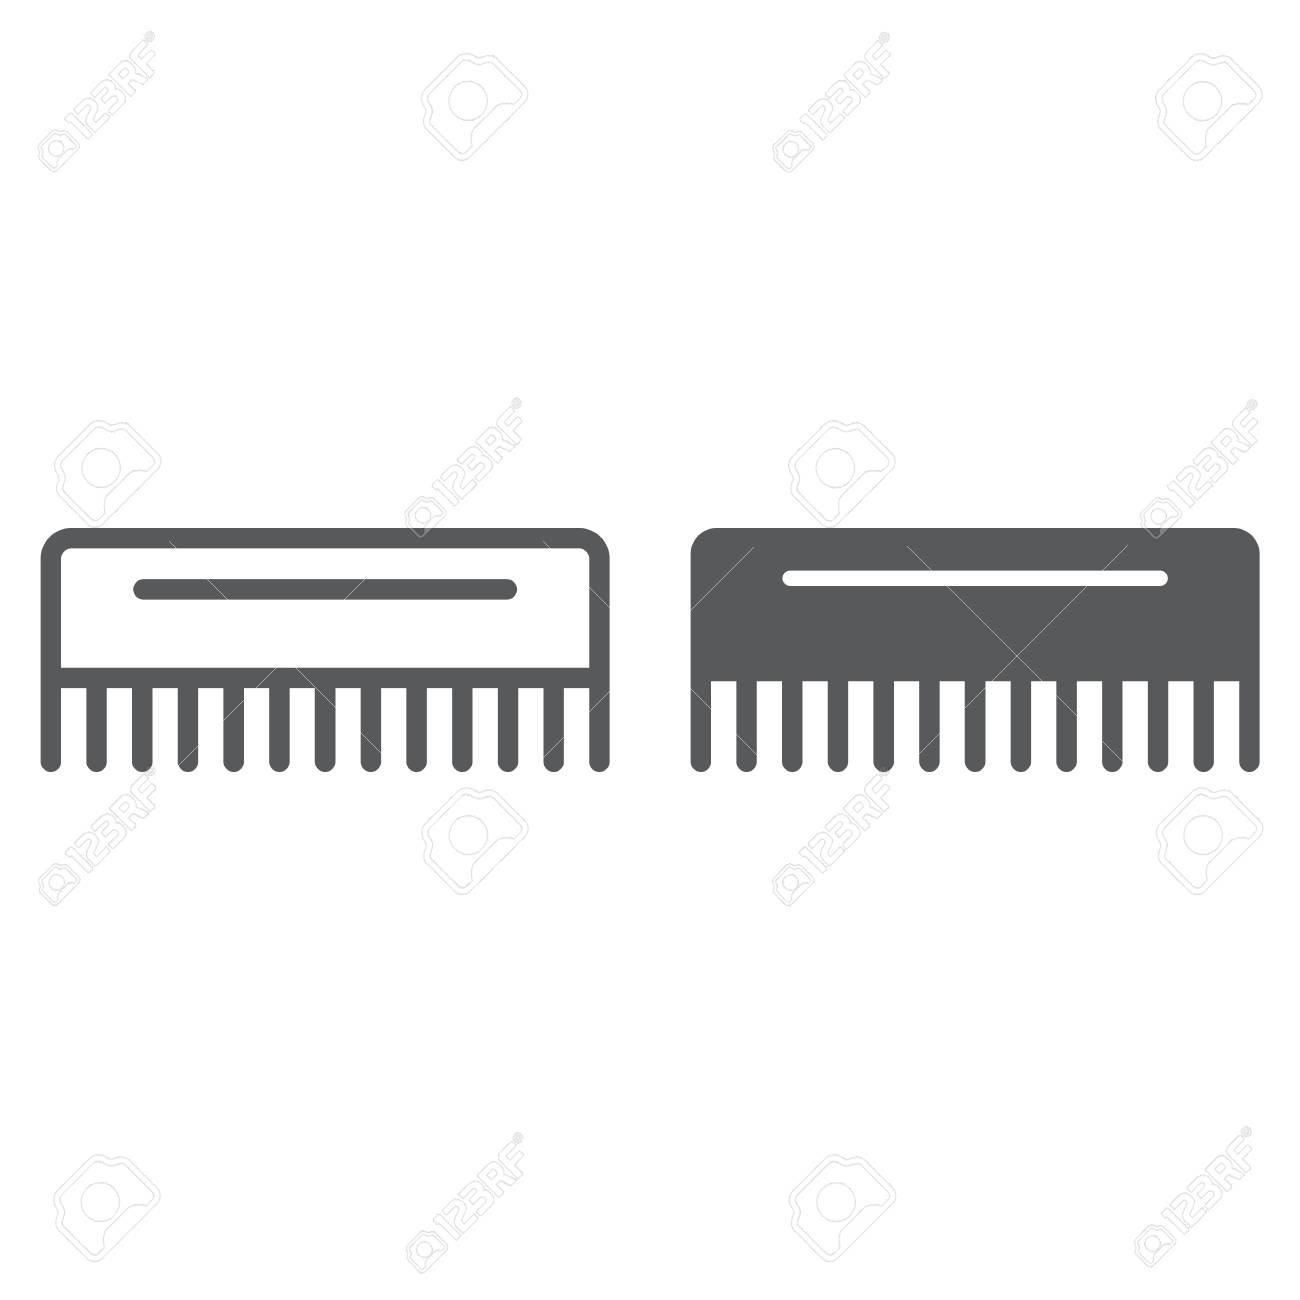 comb line and glyph